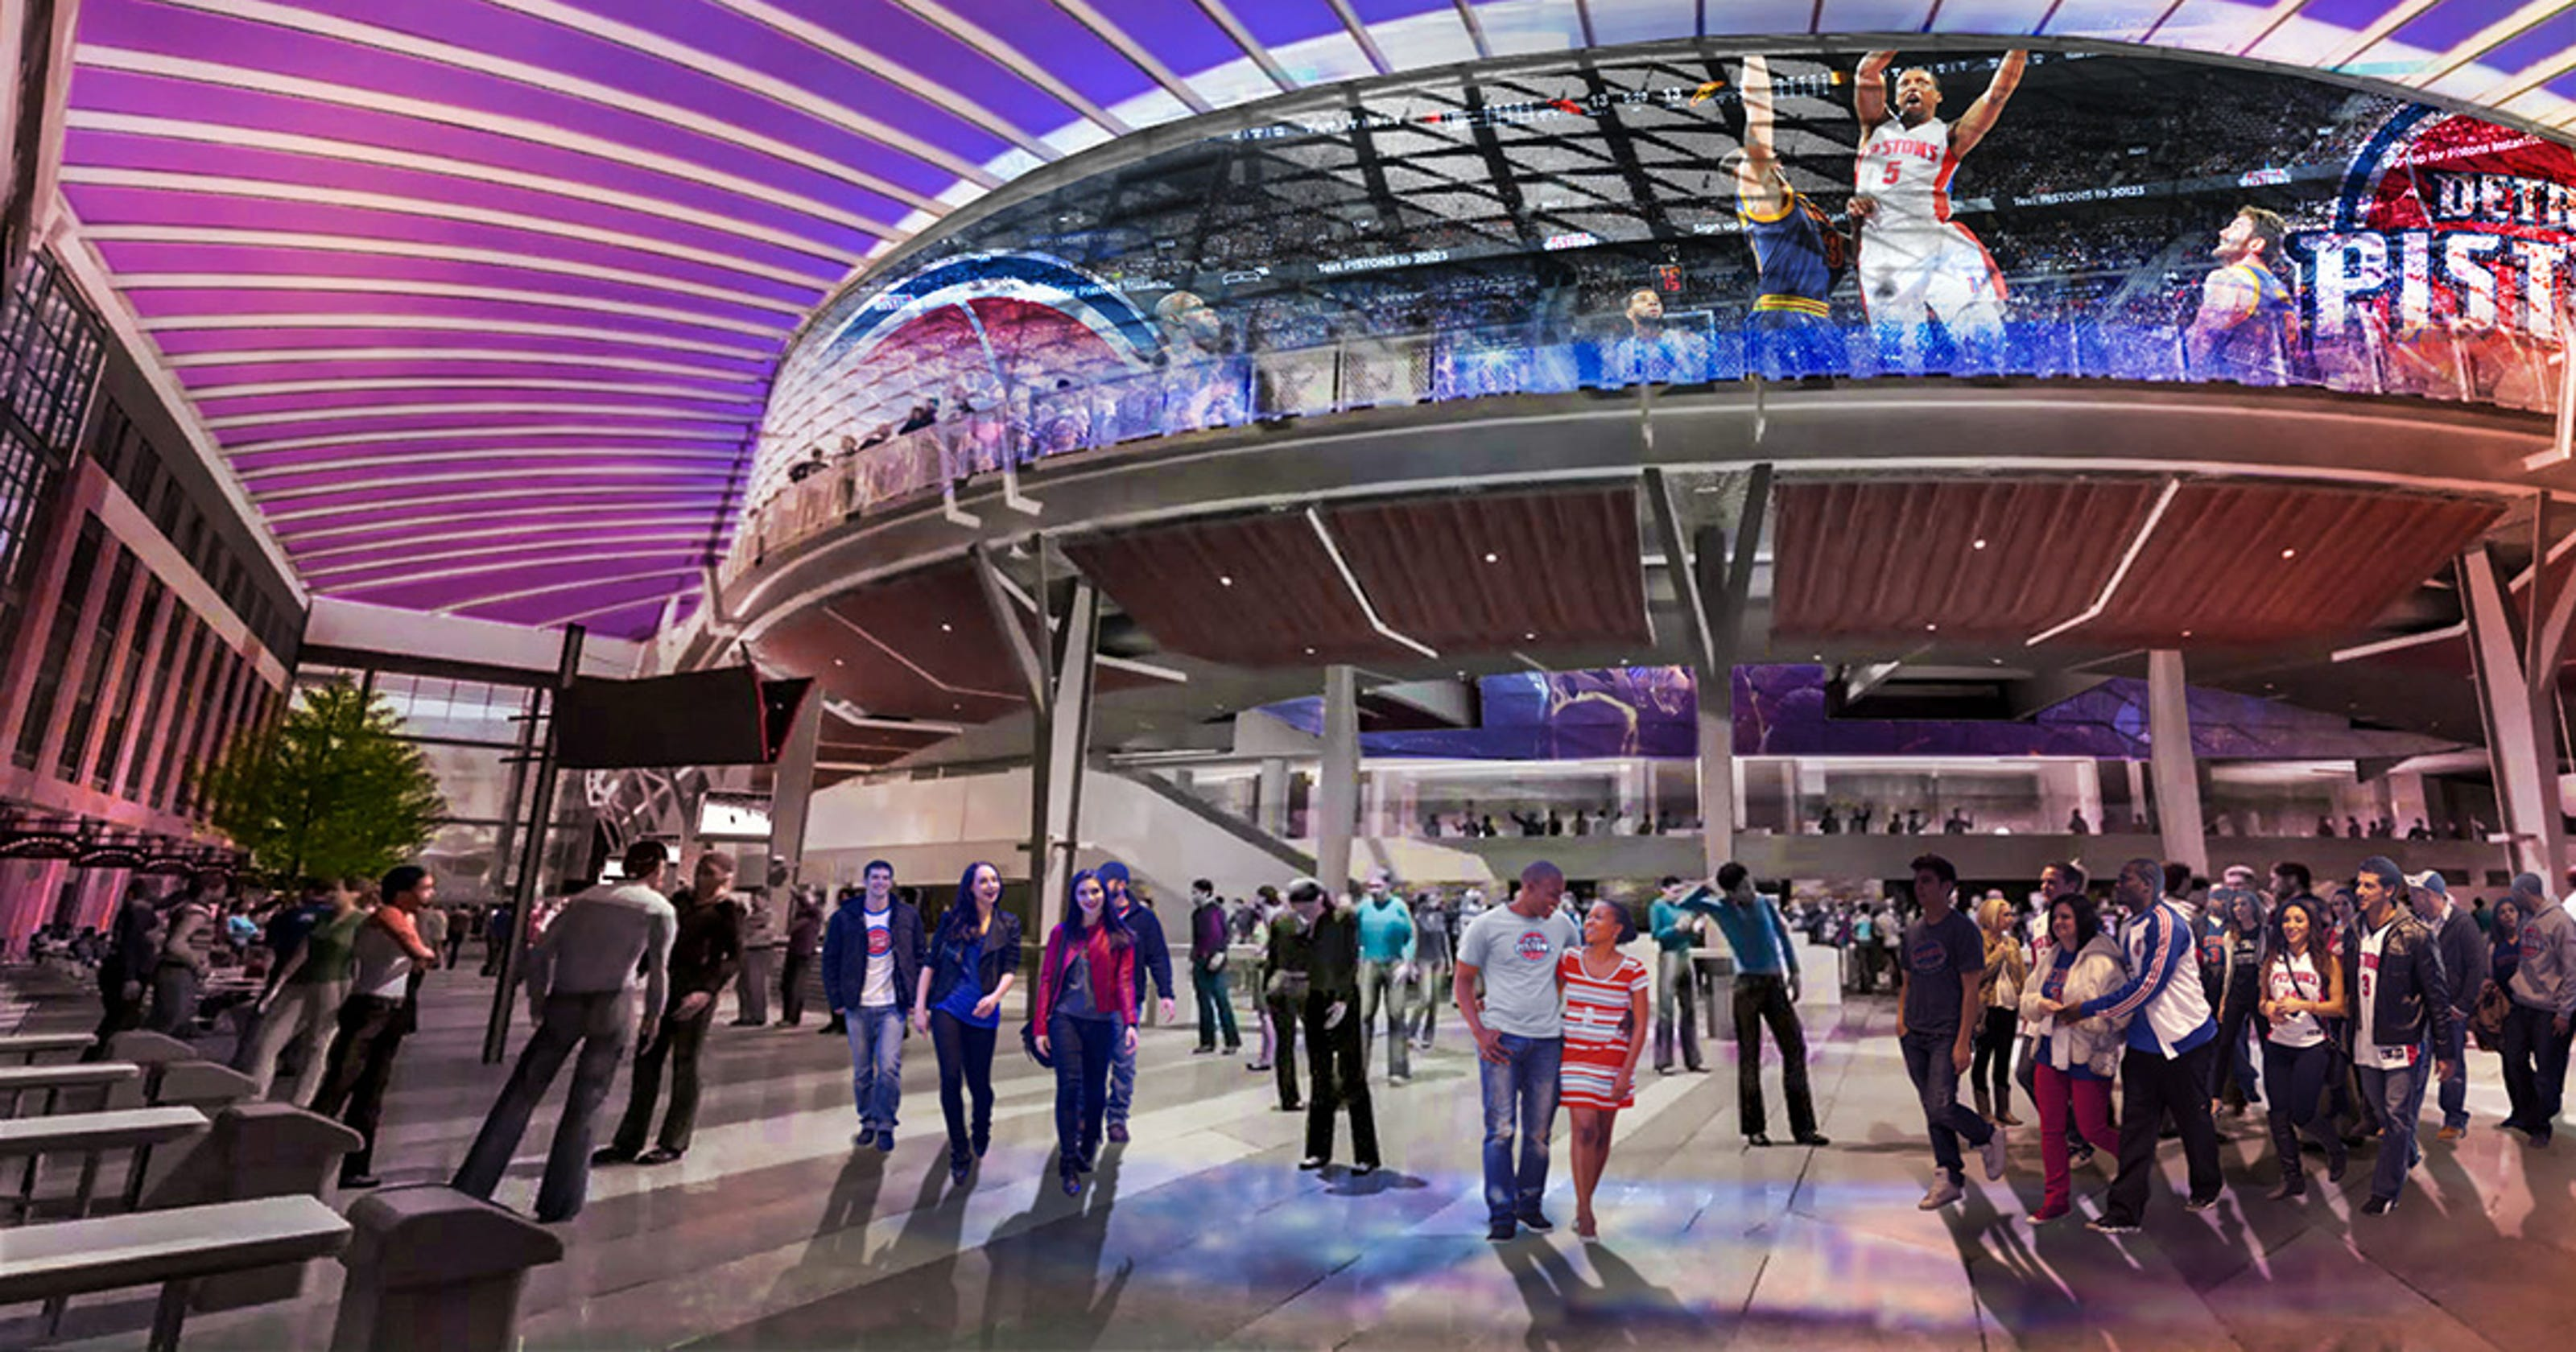 Lawsuit Detroit Dda Broke State Law With Pistons Deal